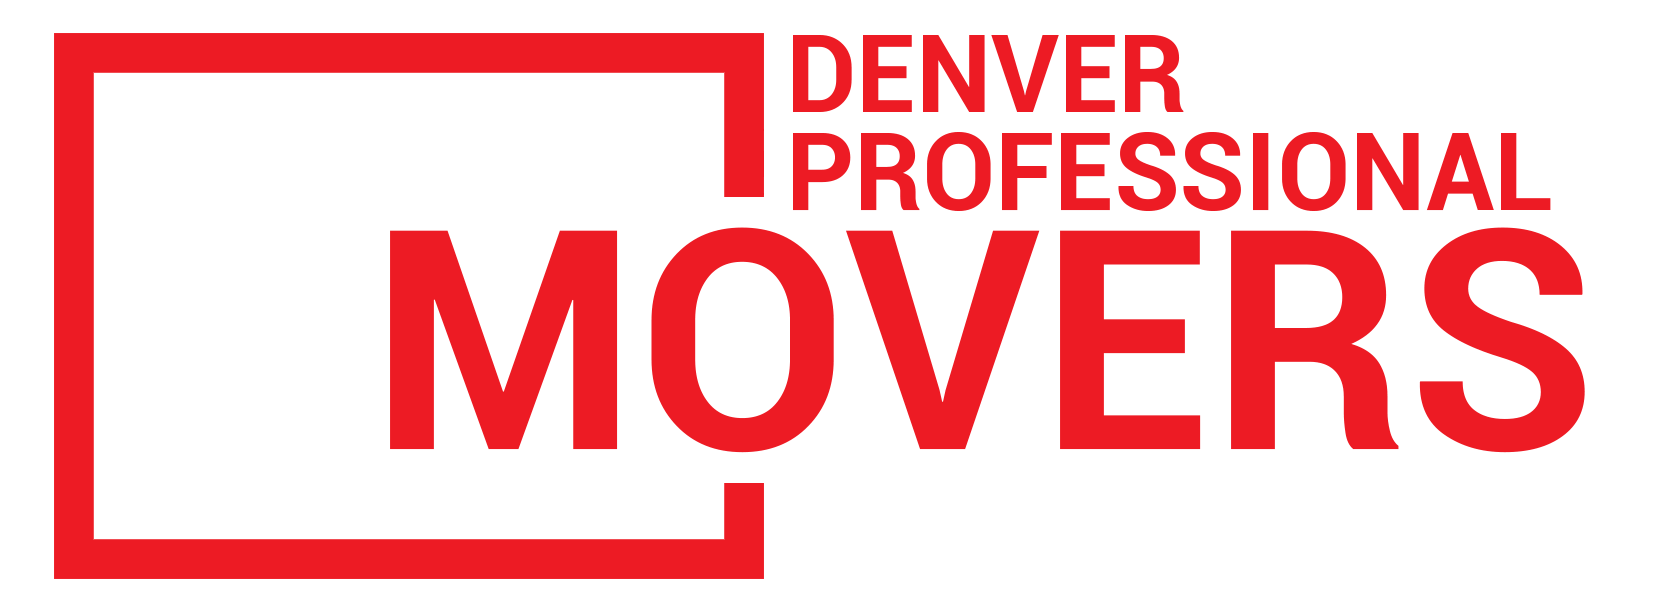 Denver Professional Movers